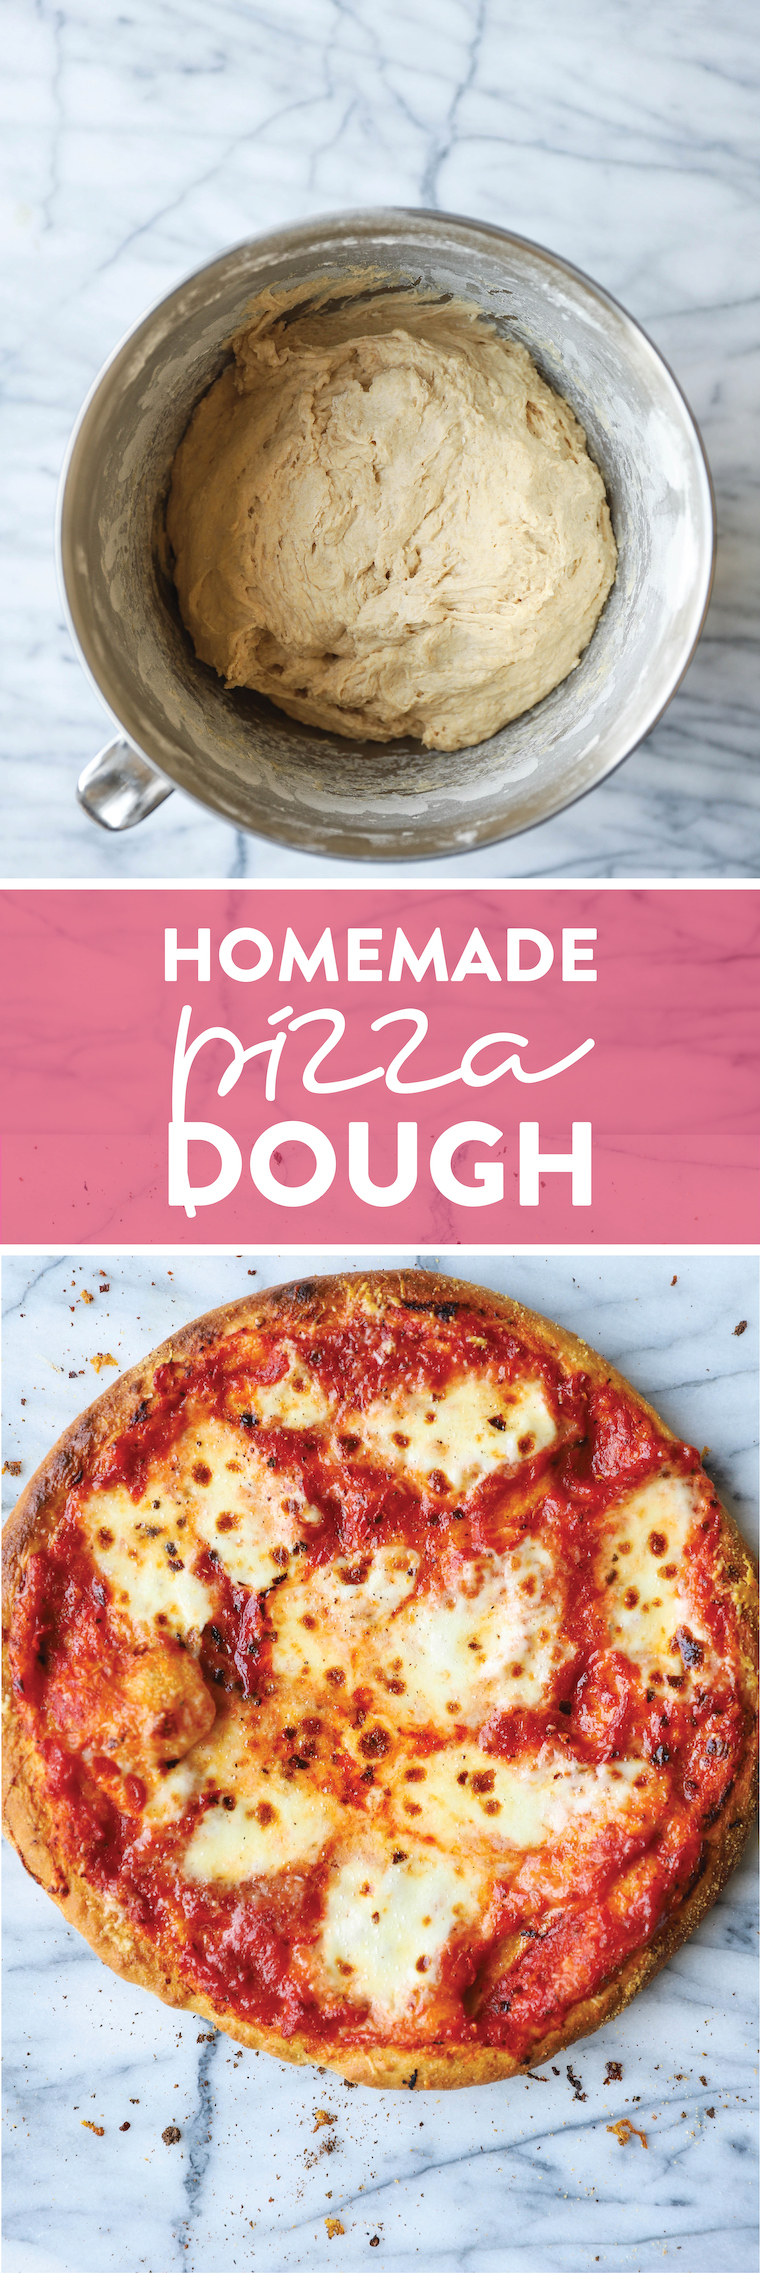 Homemade Pizza Dough - So much easier to make than you think, and it's such a game-changer! Perfect for pizza night and it's freezer-friendly!